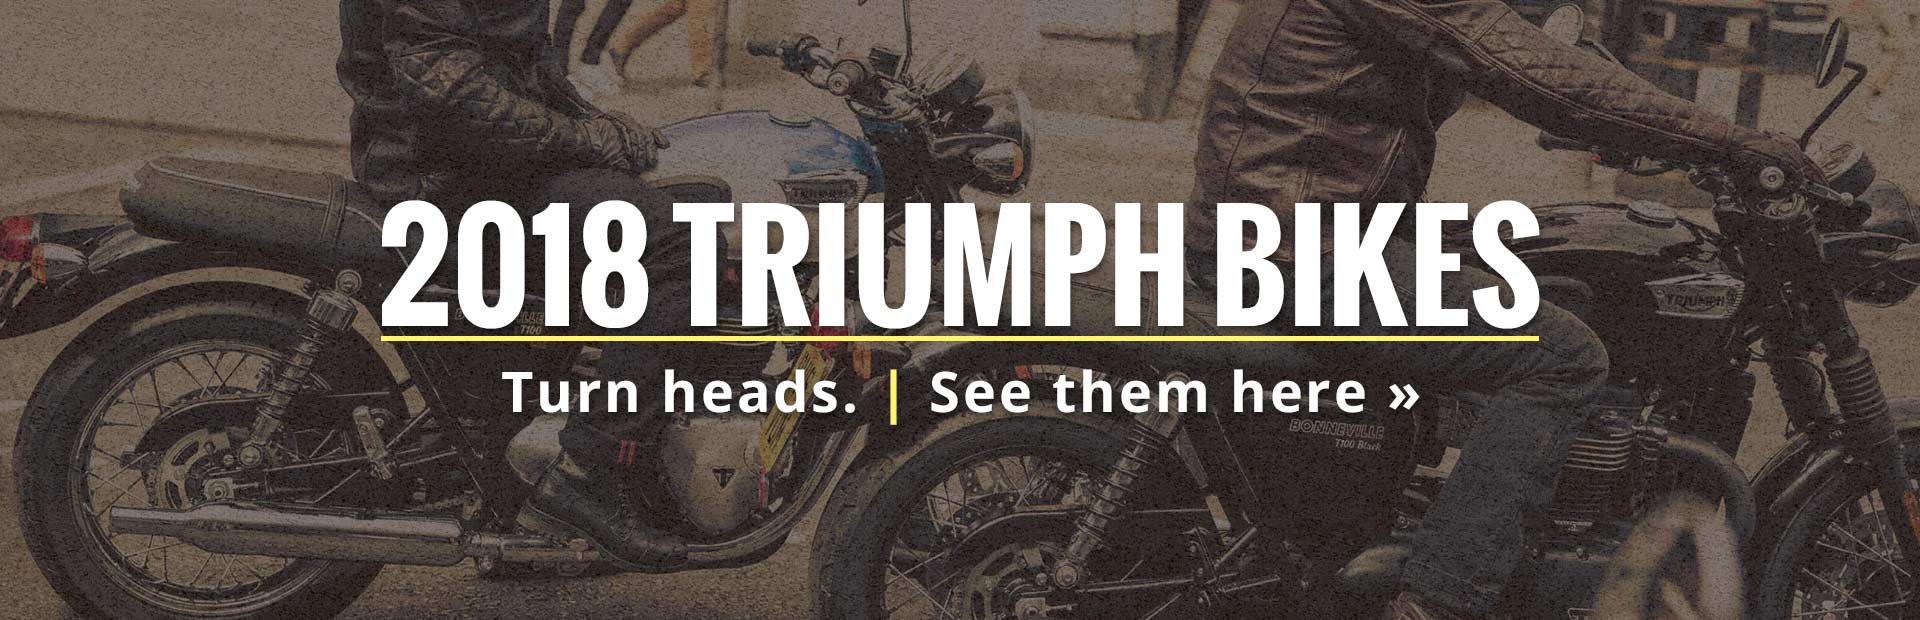 2018 Triumph Bikes: Click here to view the models.